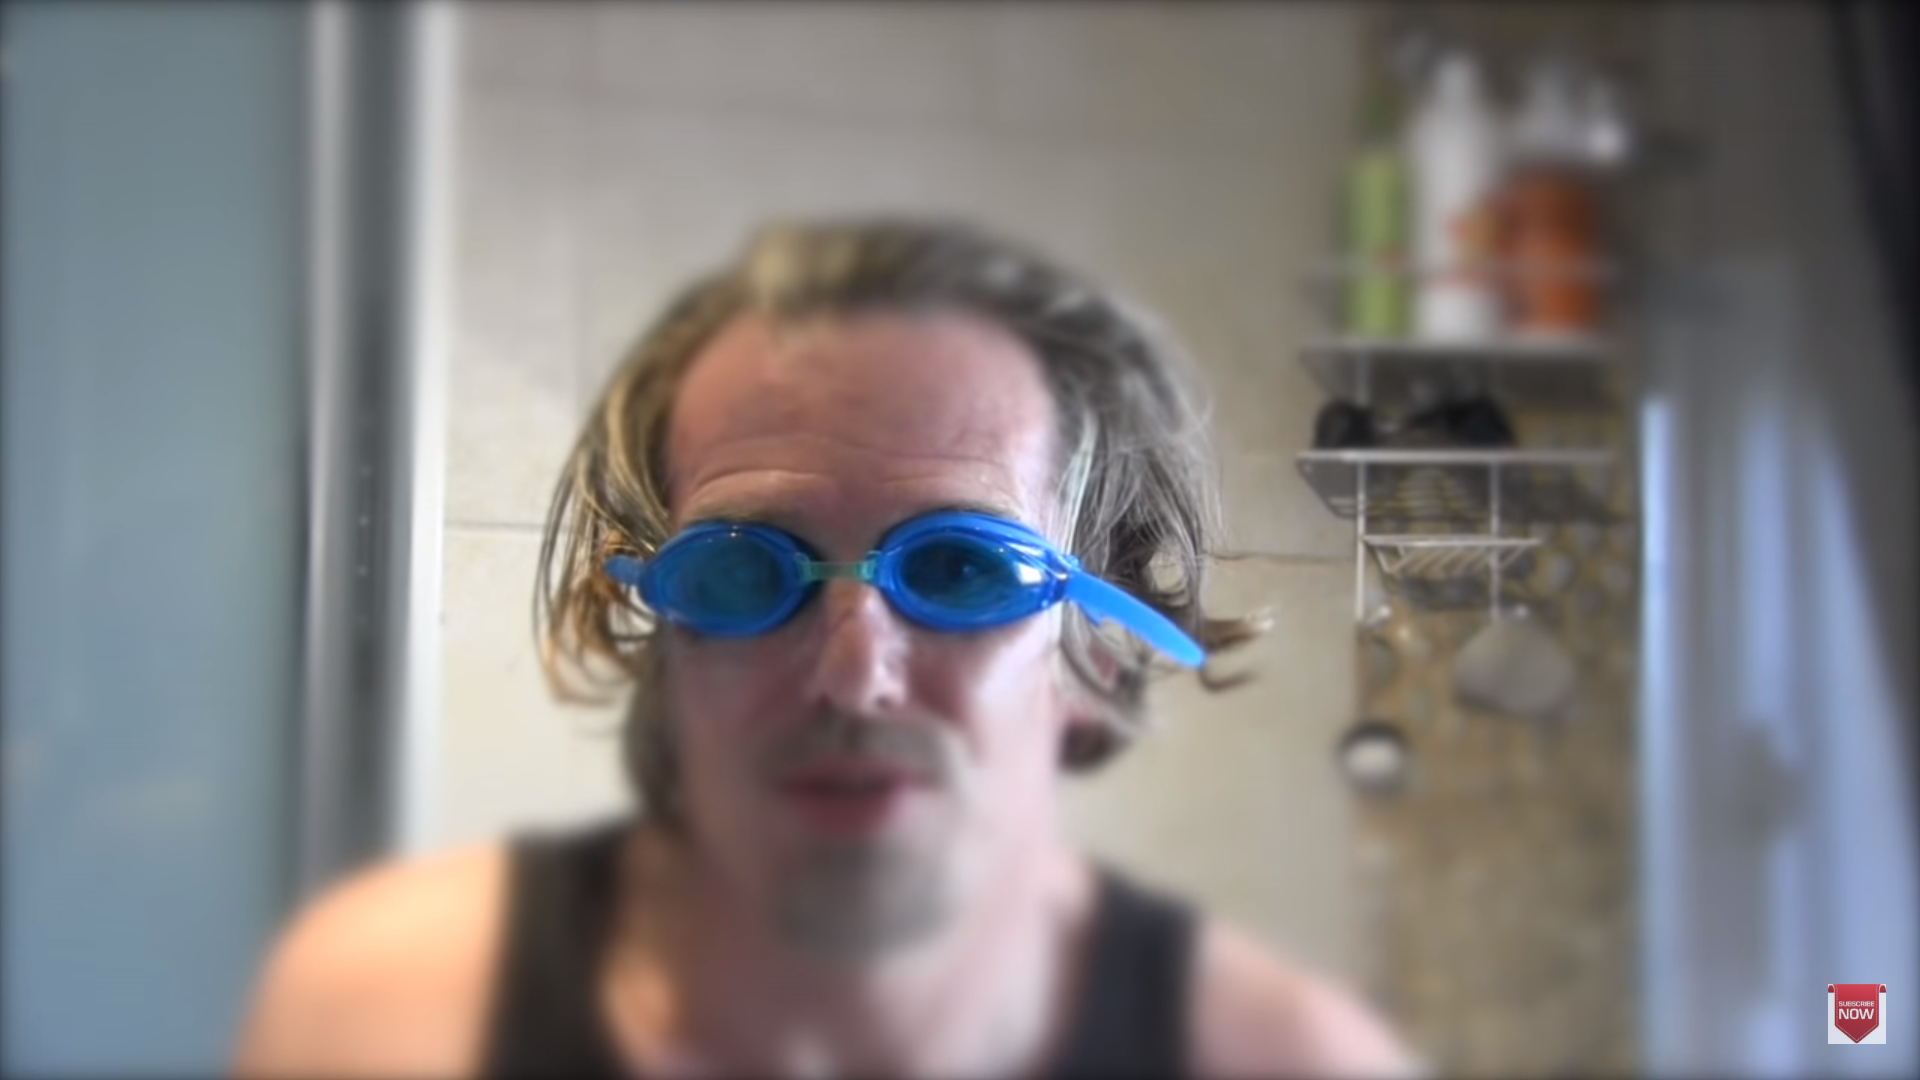 Goggles full of urine, why not? Credit: YouTube